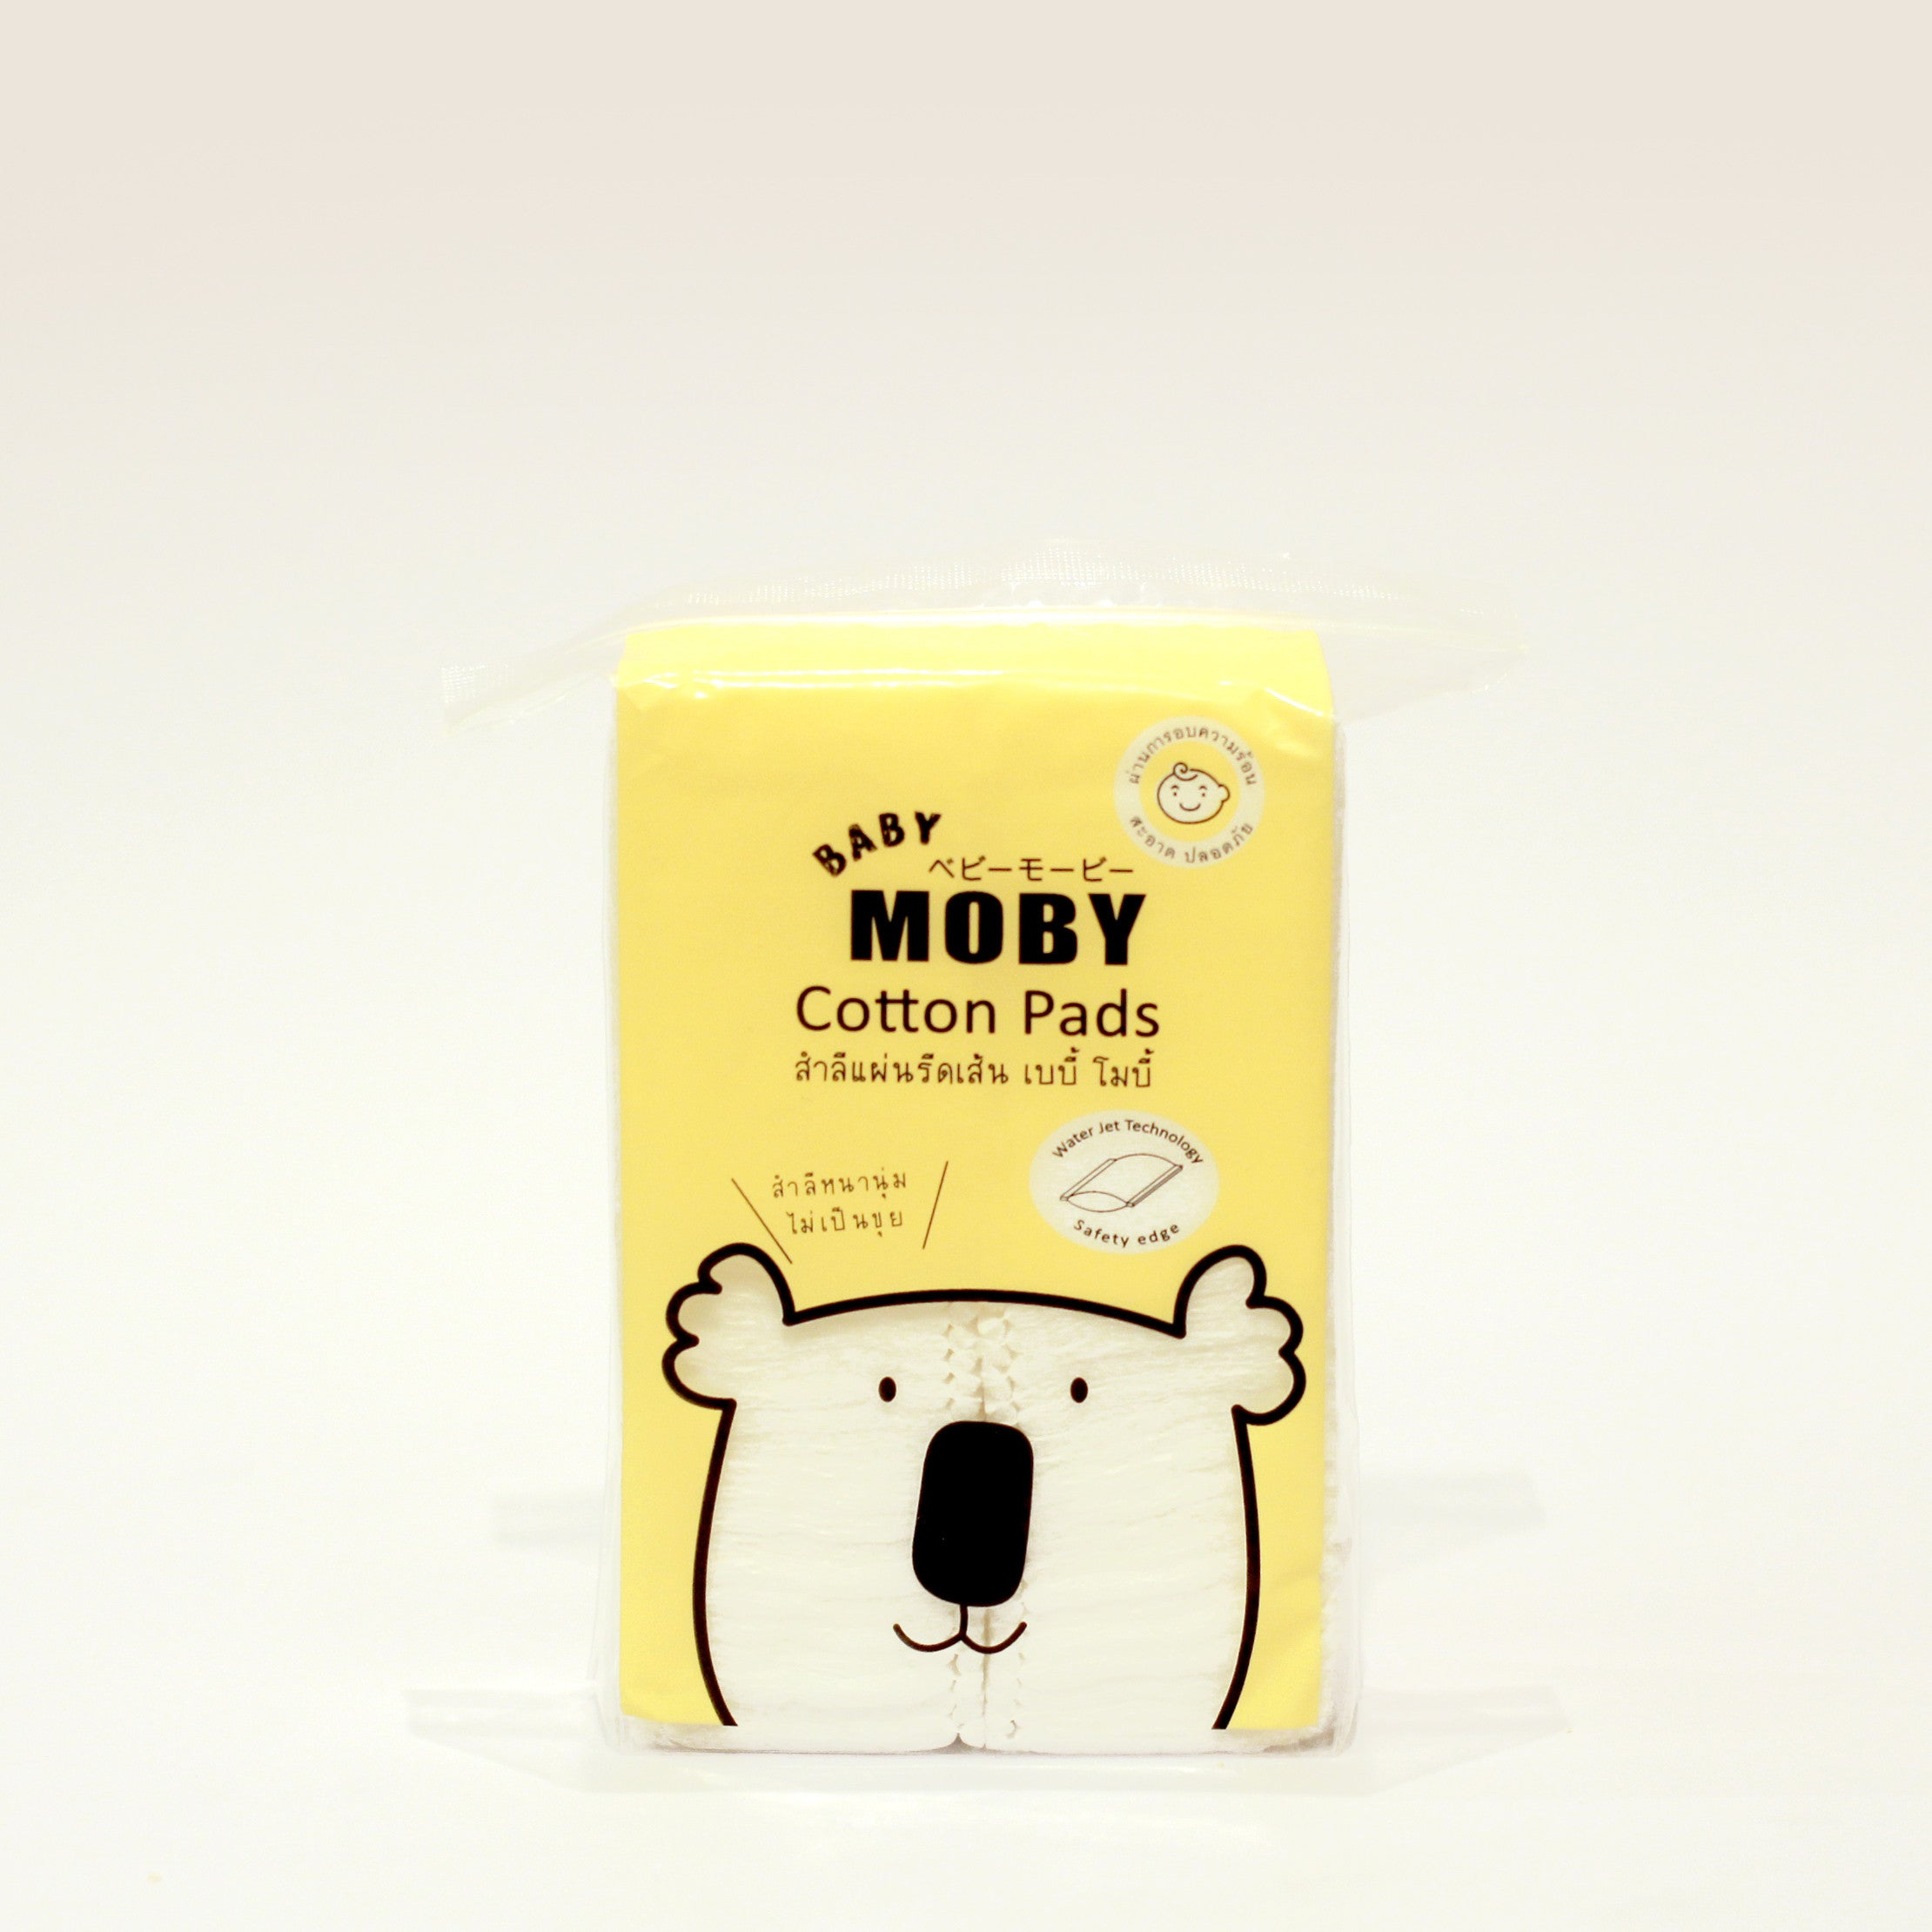 Baby Moby Cotton Pads